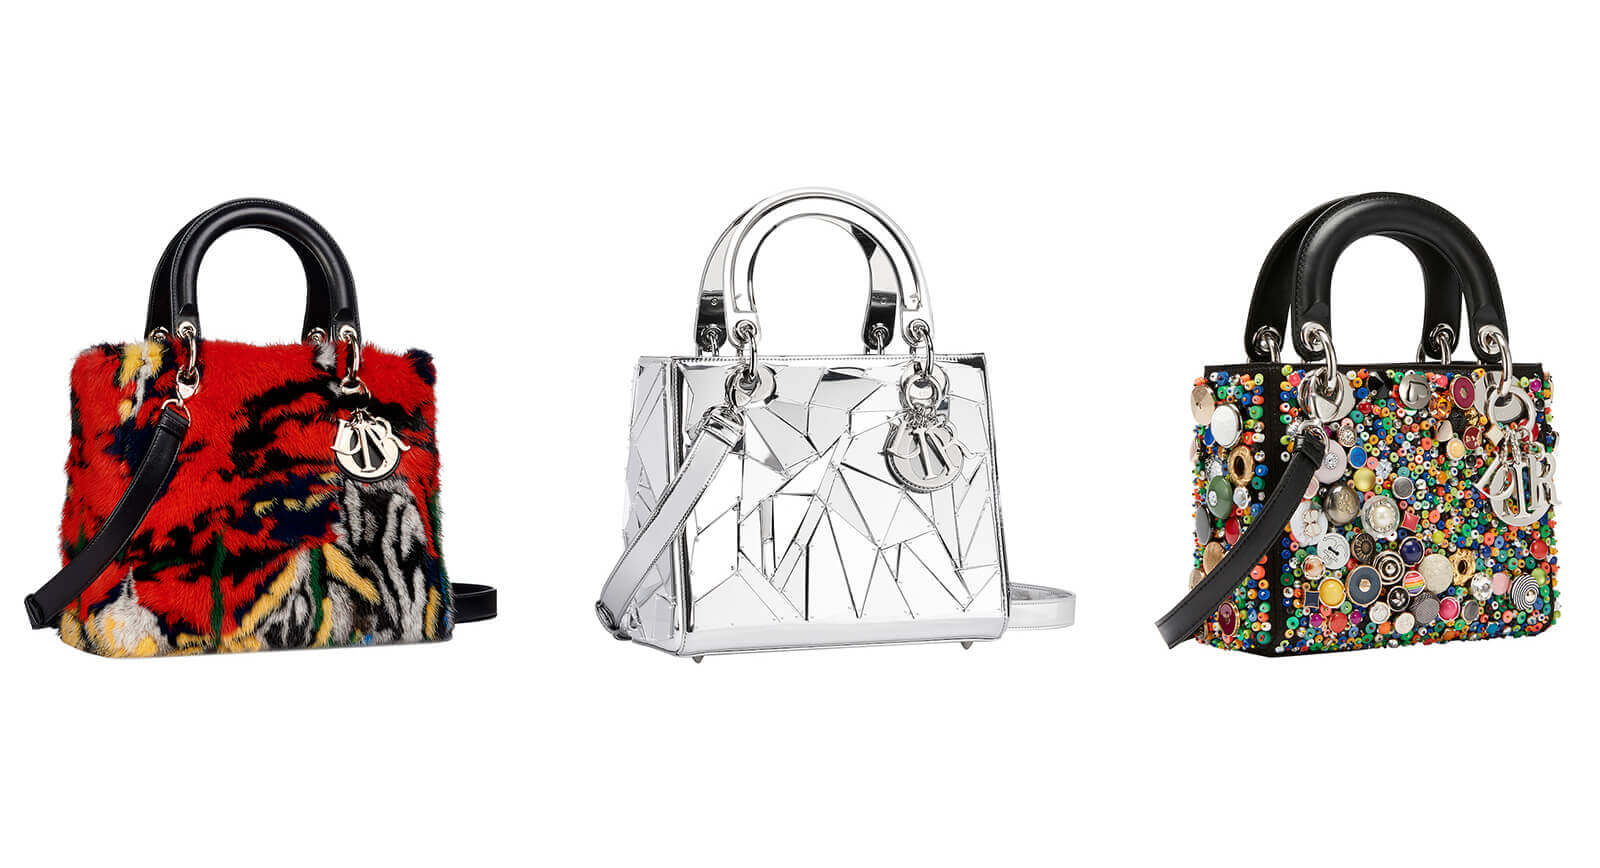 a7d774d5df Imagine taking Dior's Lady Bag as your canvas and re-imagining it in your  own artistic image. Quite the task, non? It's only, like, one of the most  iconic ...